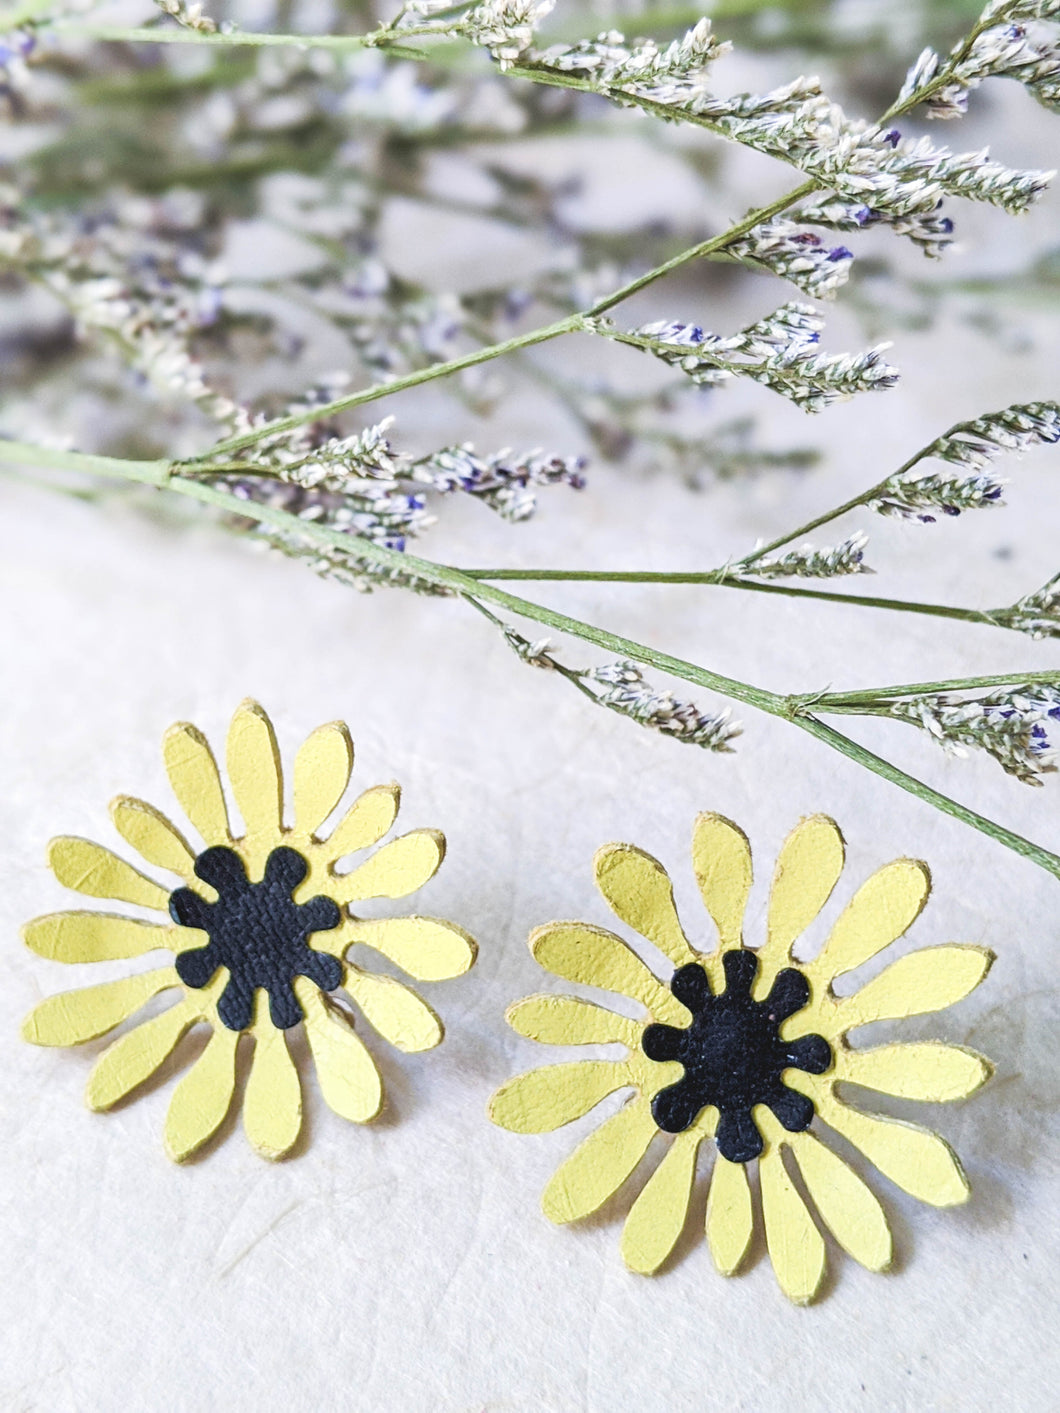 Yelow daisy flower stud earrings